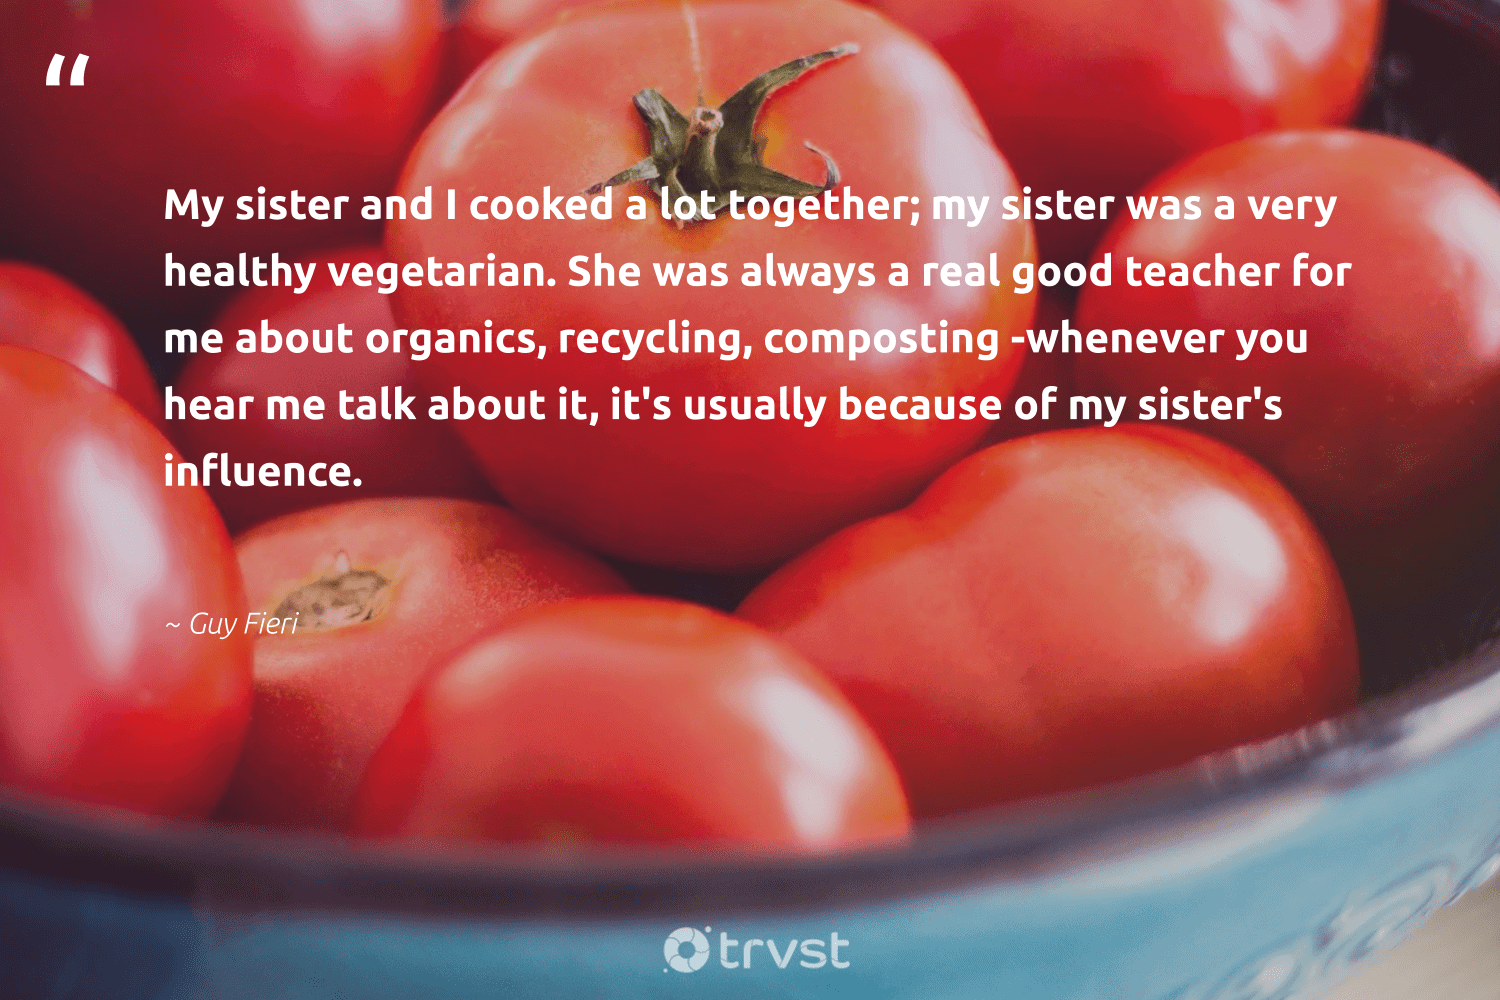 """""""My sister and I cooked a lot together; my sister was a very healthy vegetarian. She was always a real good teacher for me about organics, recycling, composting -whenever you hear me talk about it, it's usually because of my sister's influence.""""  - Guy Fieri #trvst #quotes #recycling #healthy #influence #vegetarian #refuse #sustainability #wasteless #collectiveaction #recycled #greenliving"""